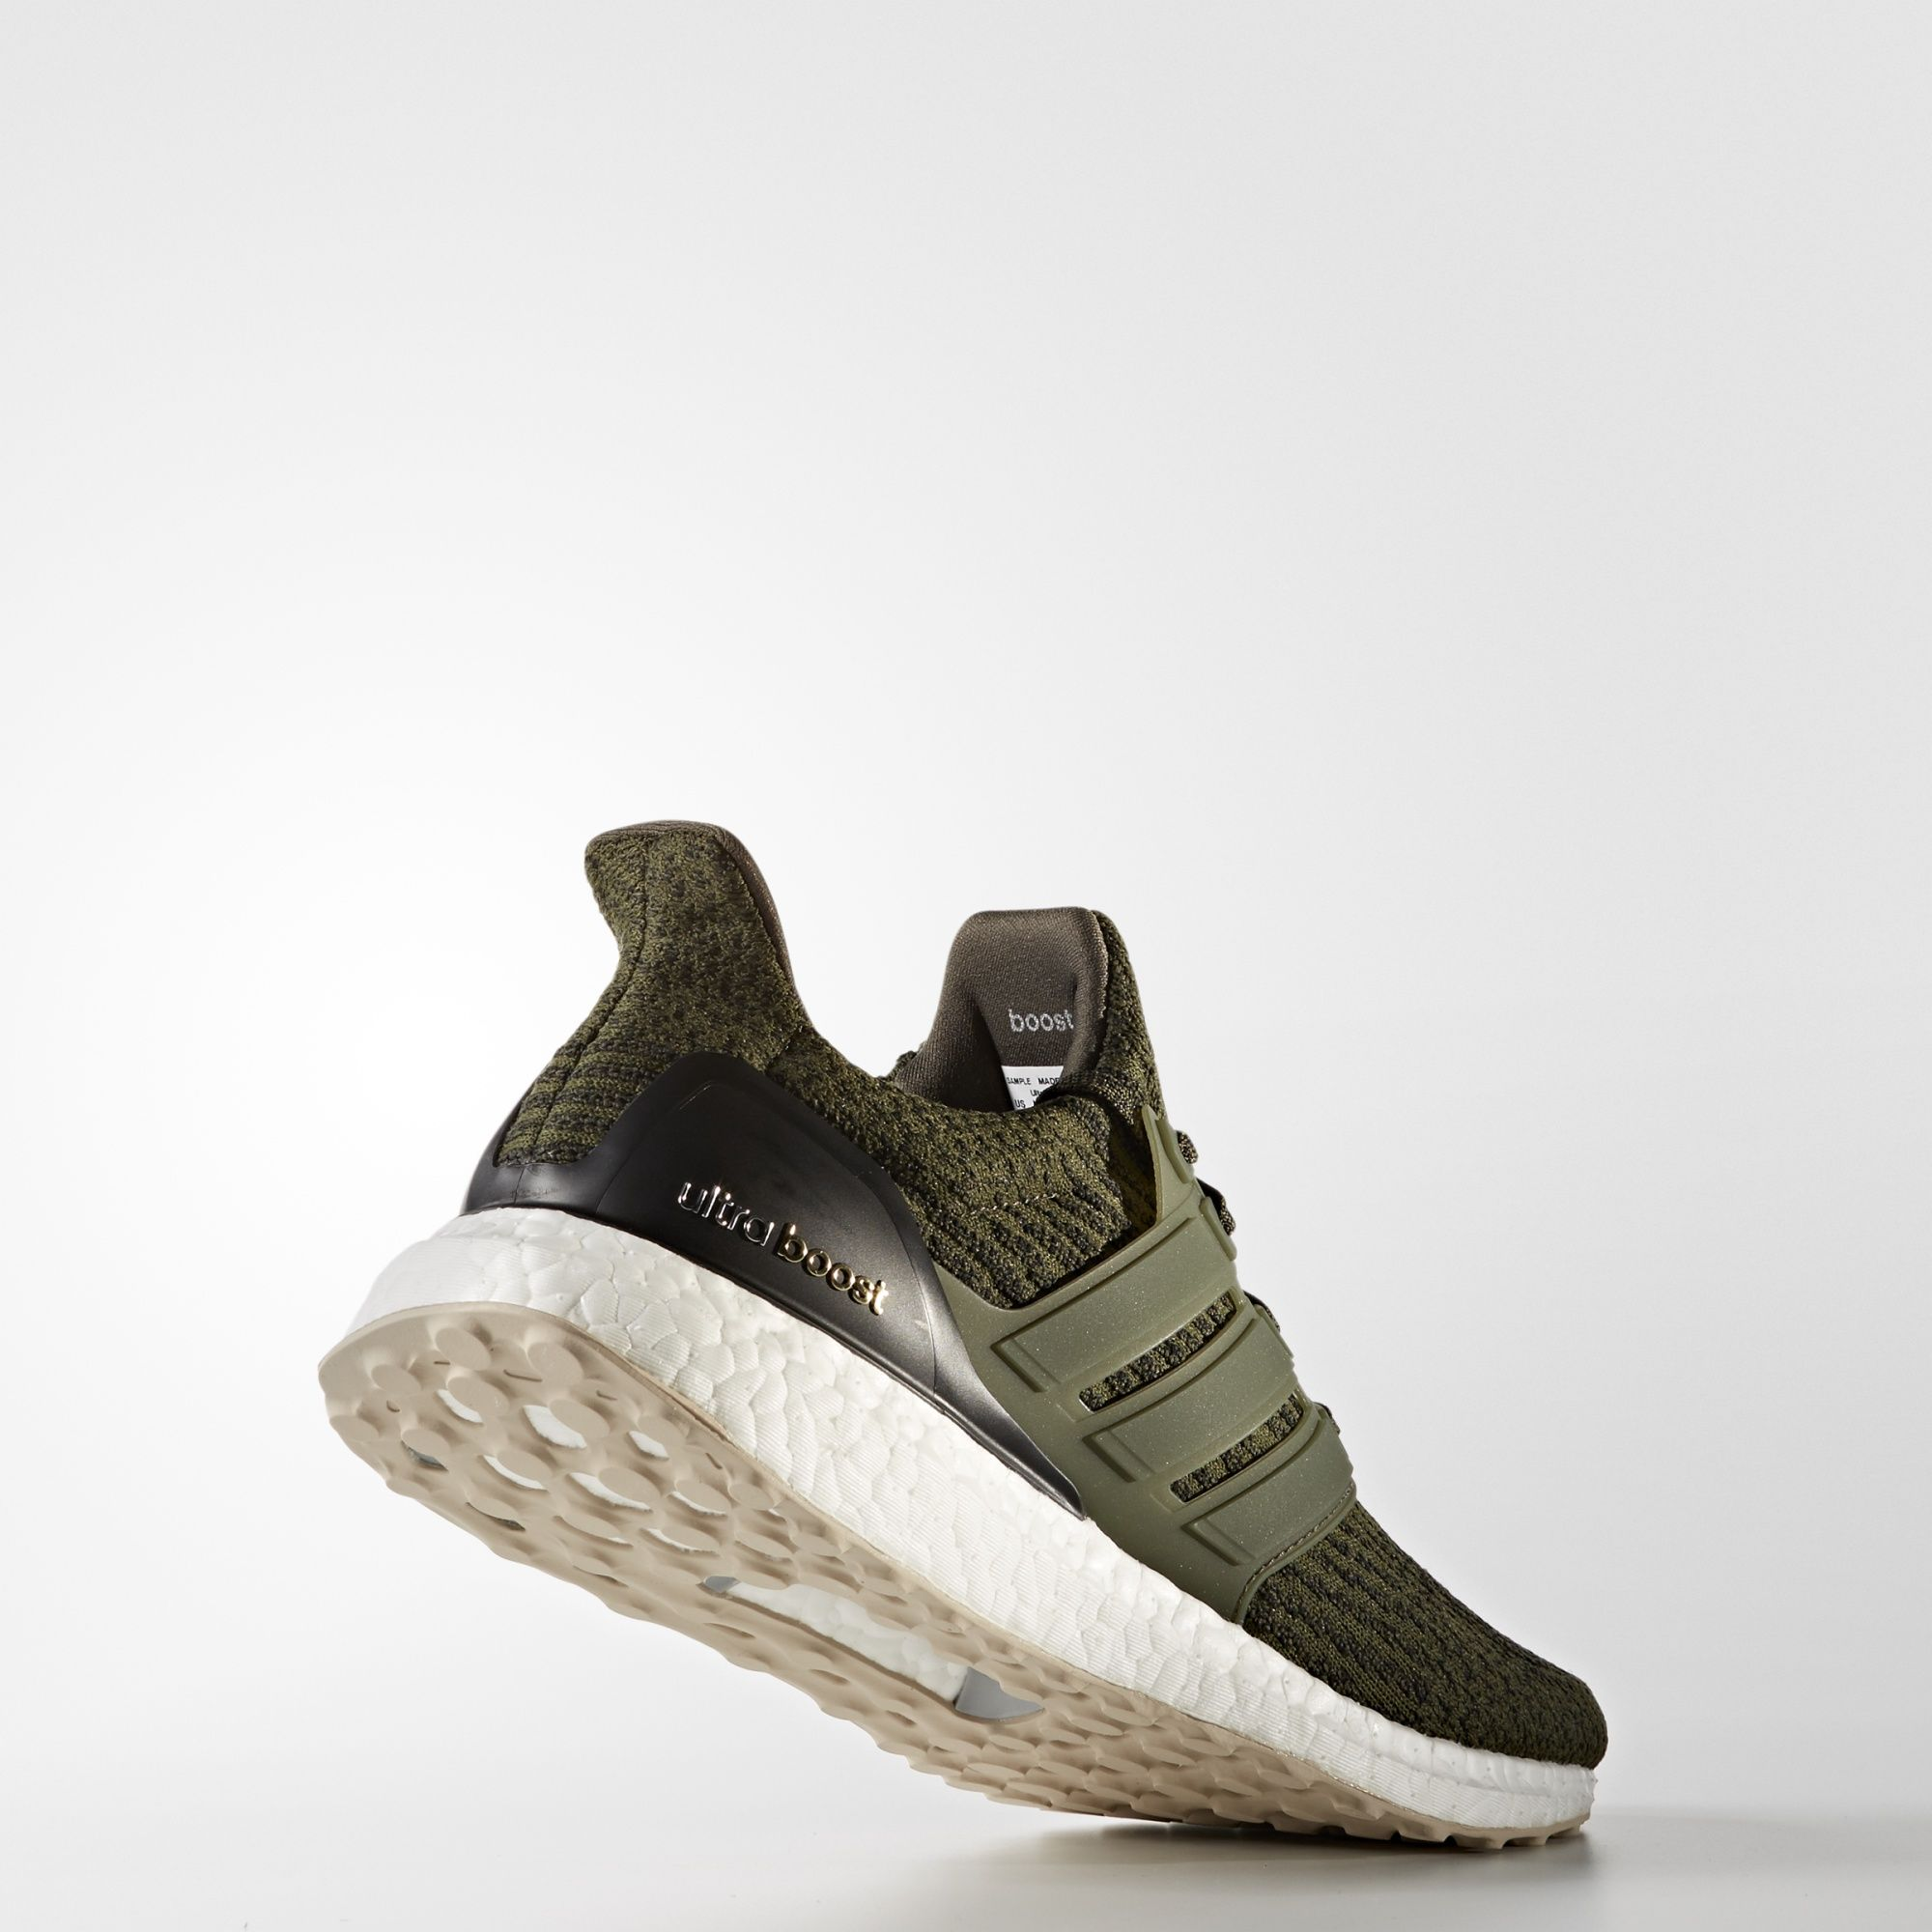 adidas ultra boost night cargo S80637 4